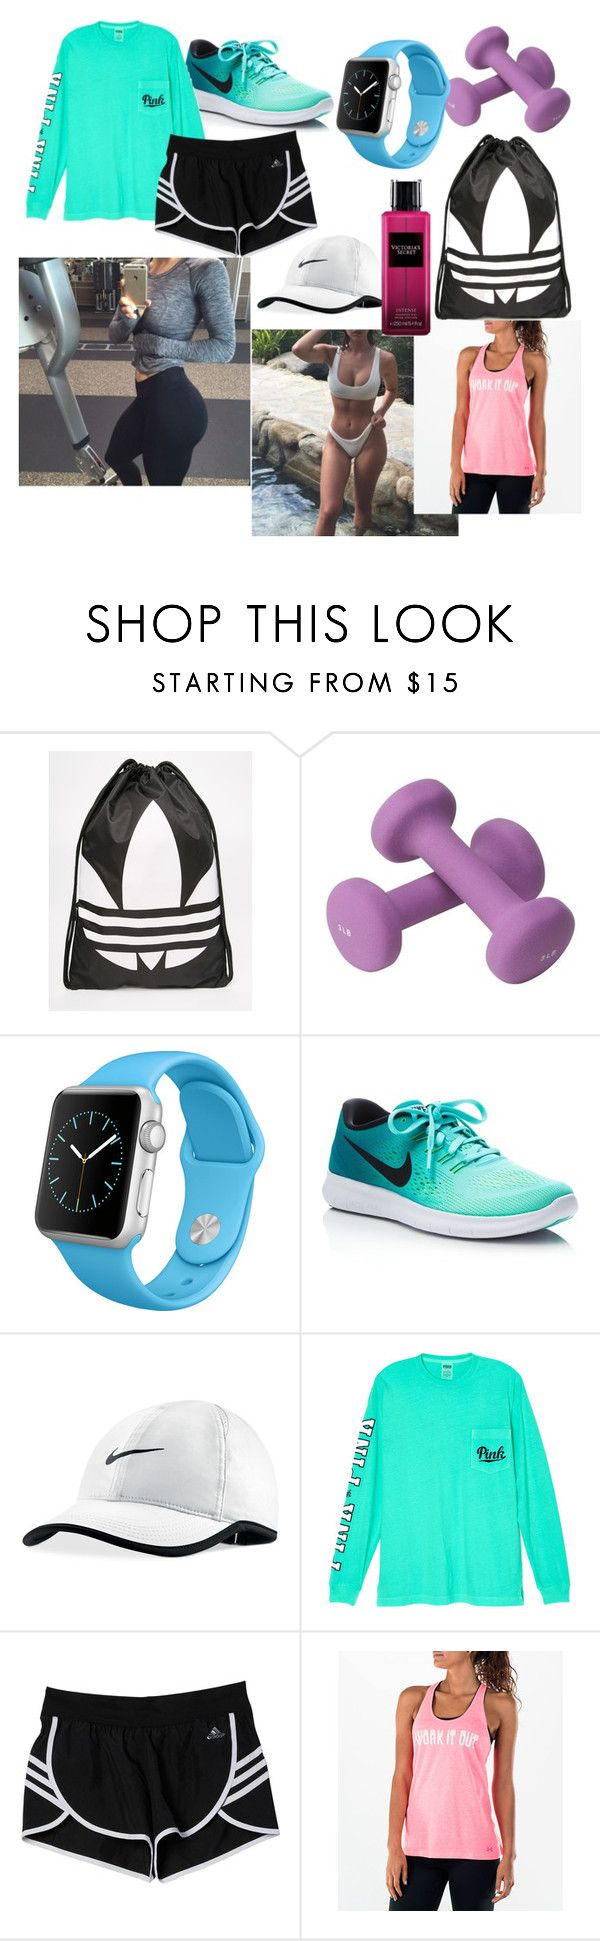 """""""Work out"""" by isobeld-co-nz ❤ liked on Polyvore featuring adidas, Apple, NIKE, Victoria's Secret and Under Armour"""